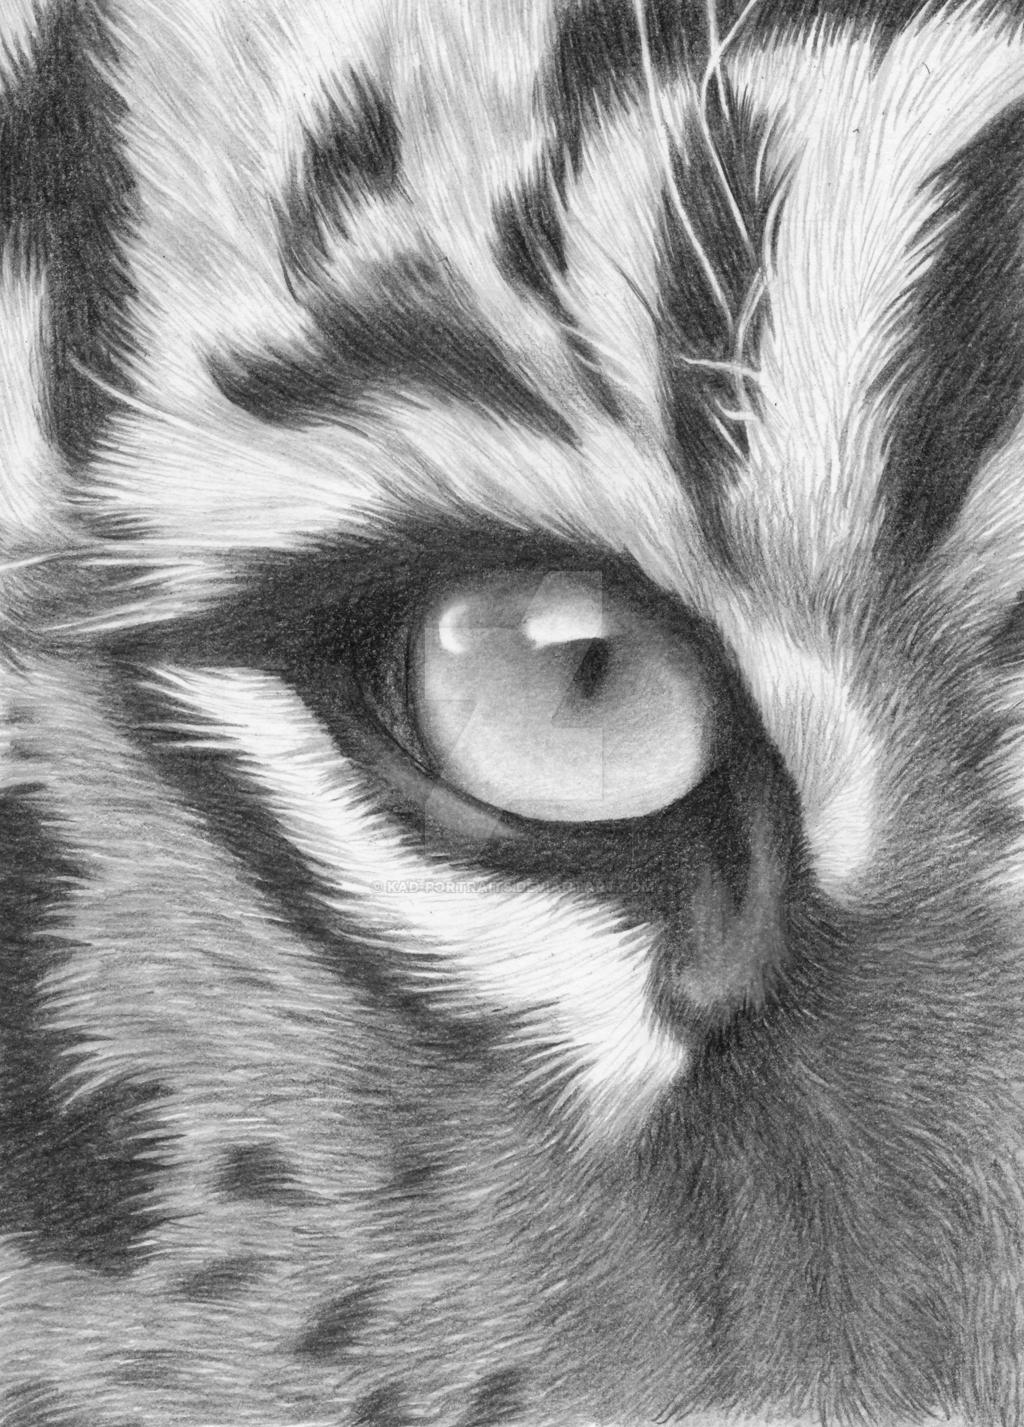 The Eye Of The Tiger By Kad-portraits On DeviantArt